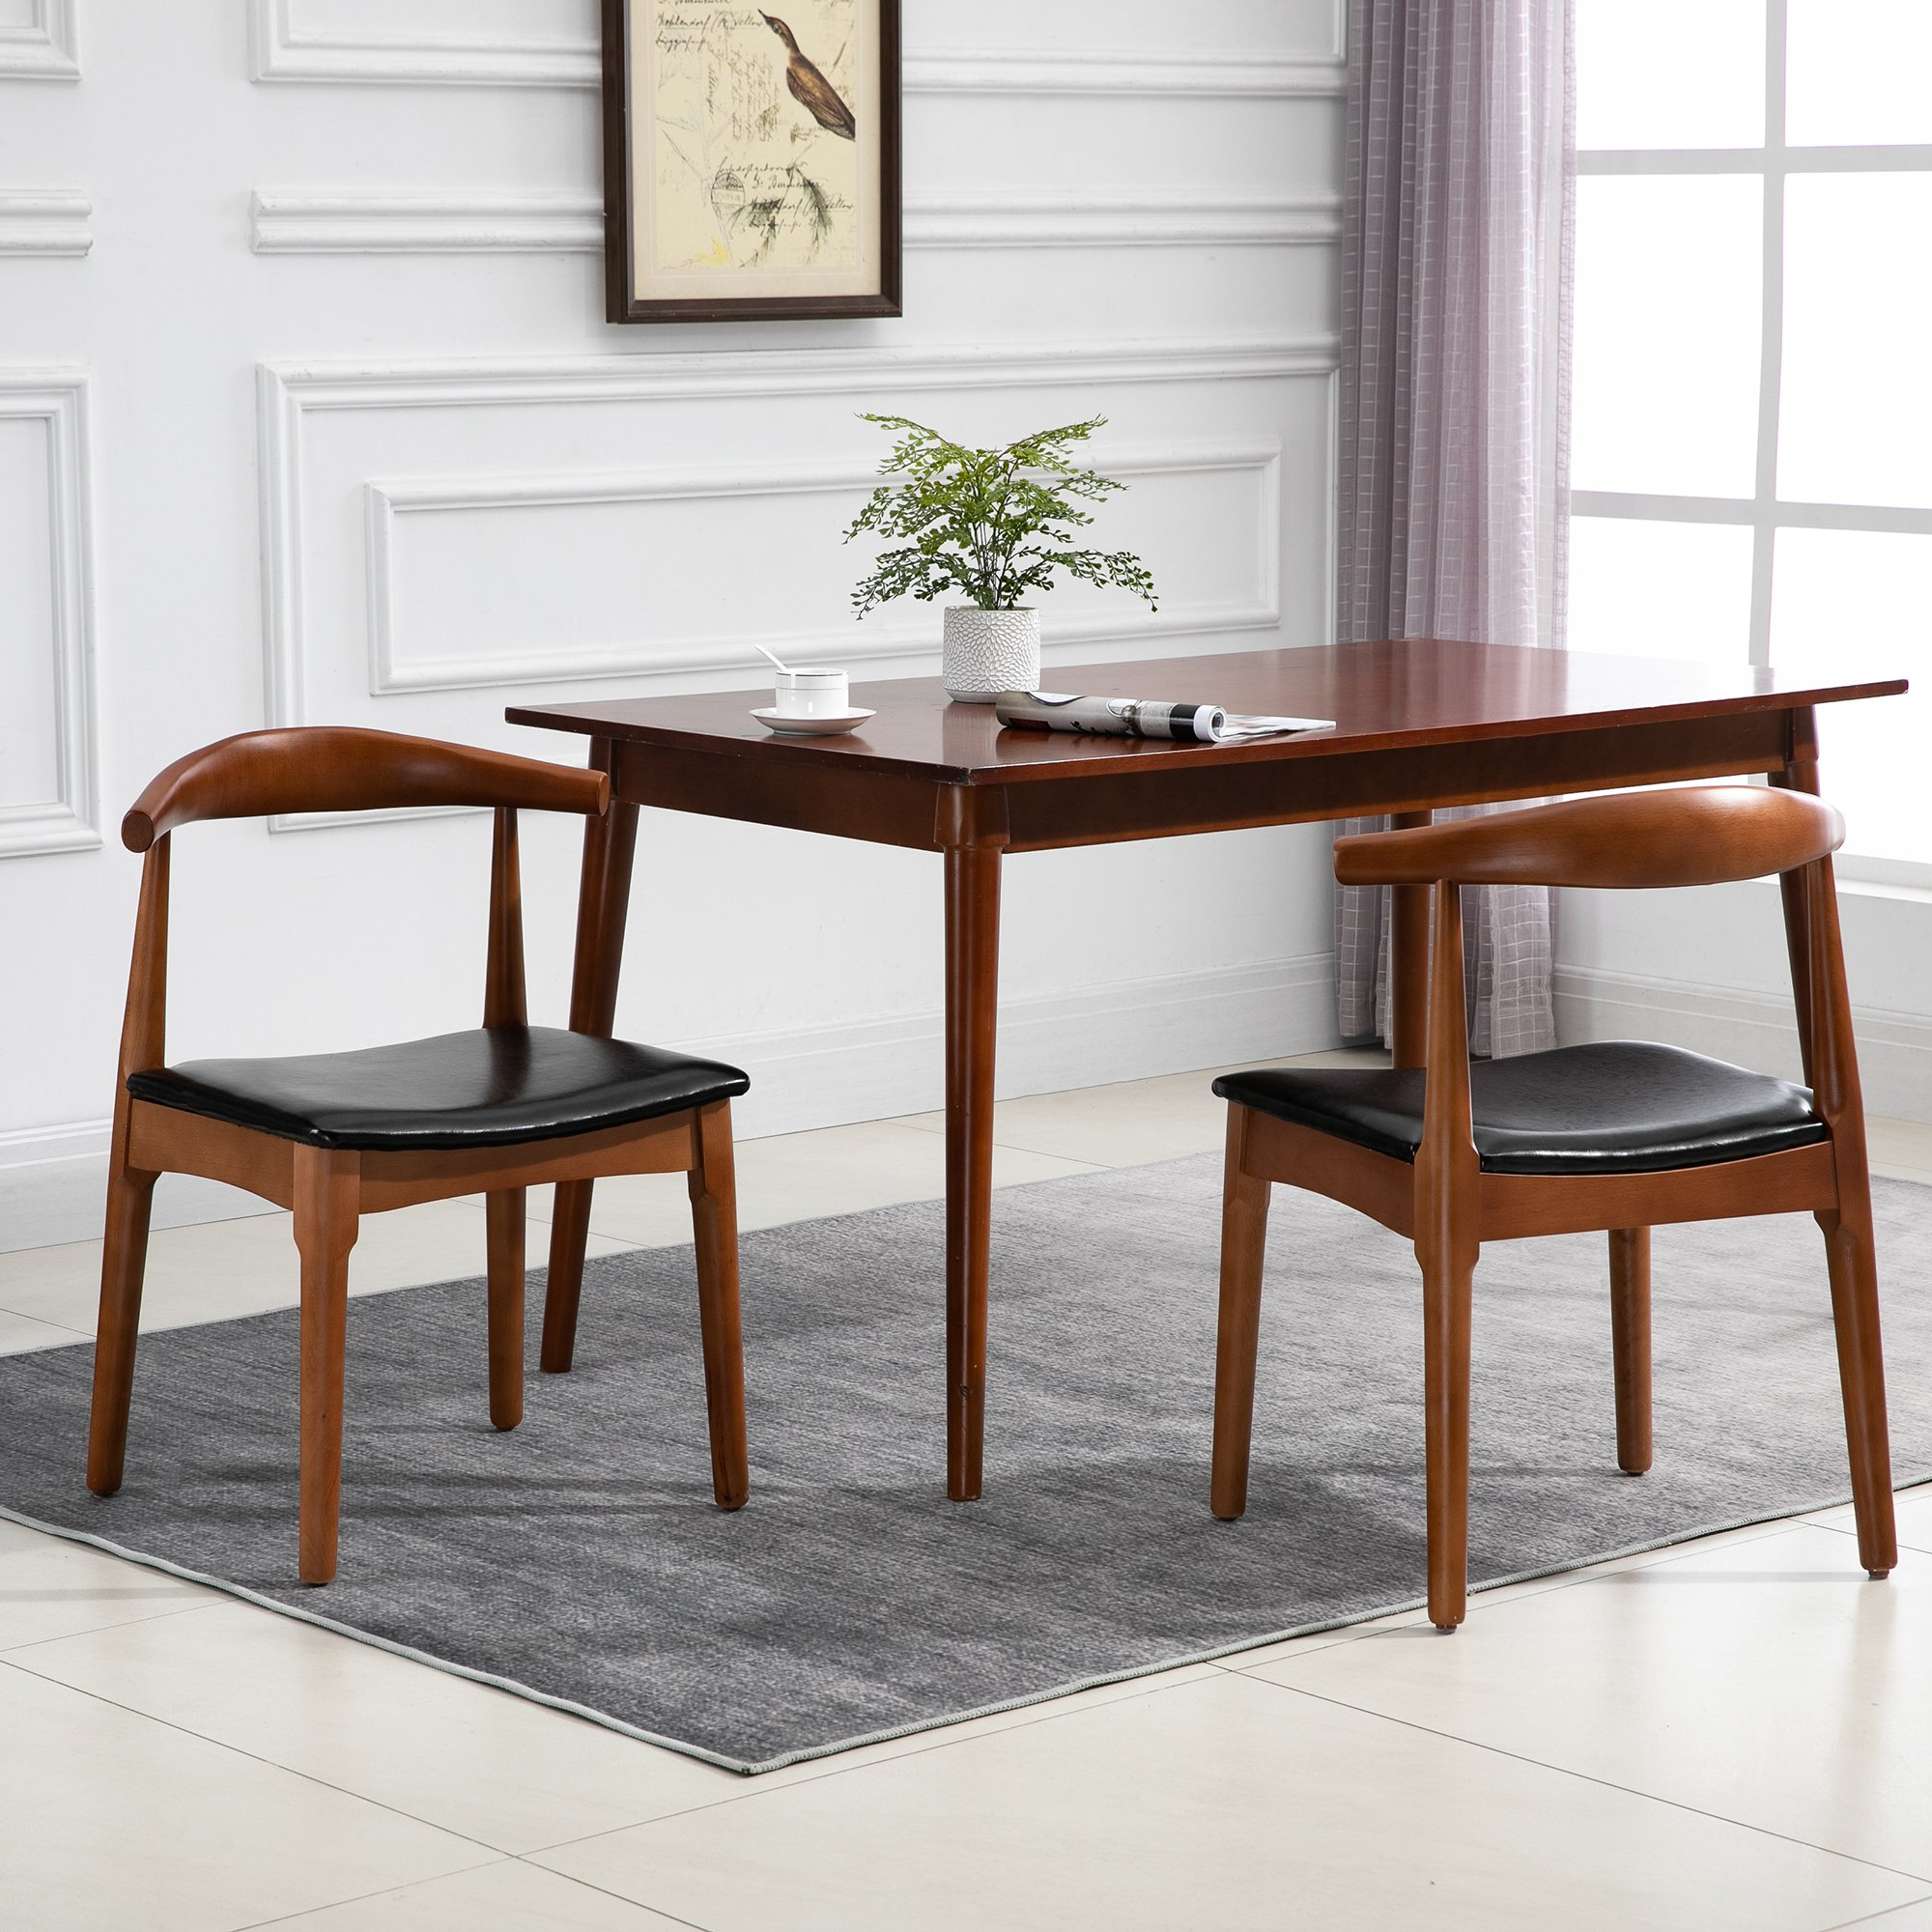 Homcom 2 Piece Mid Century Modern Dining Side Chair Upholstered Faux Leather Seat Walnut Of Back Frame Aosom Canada